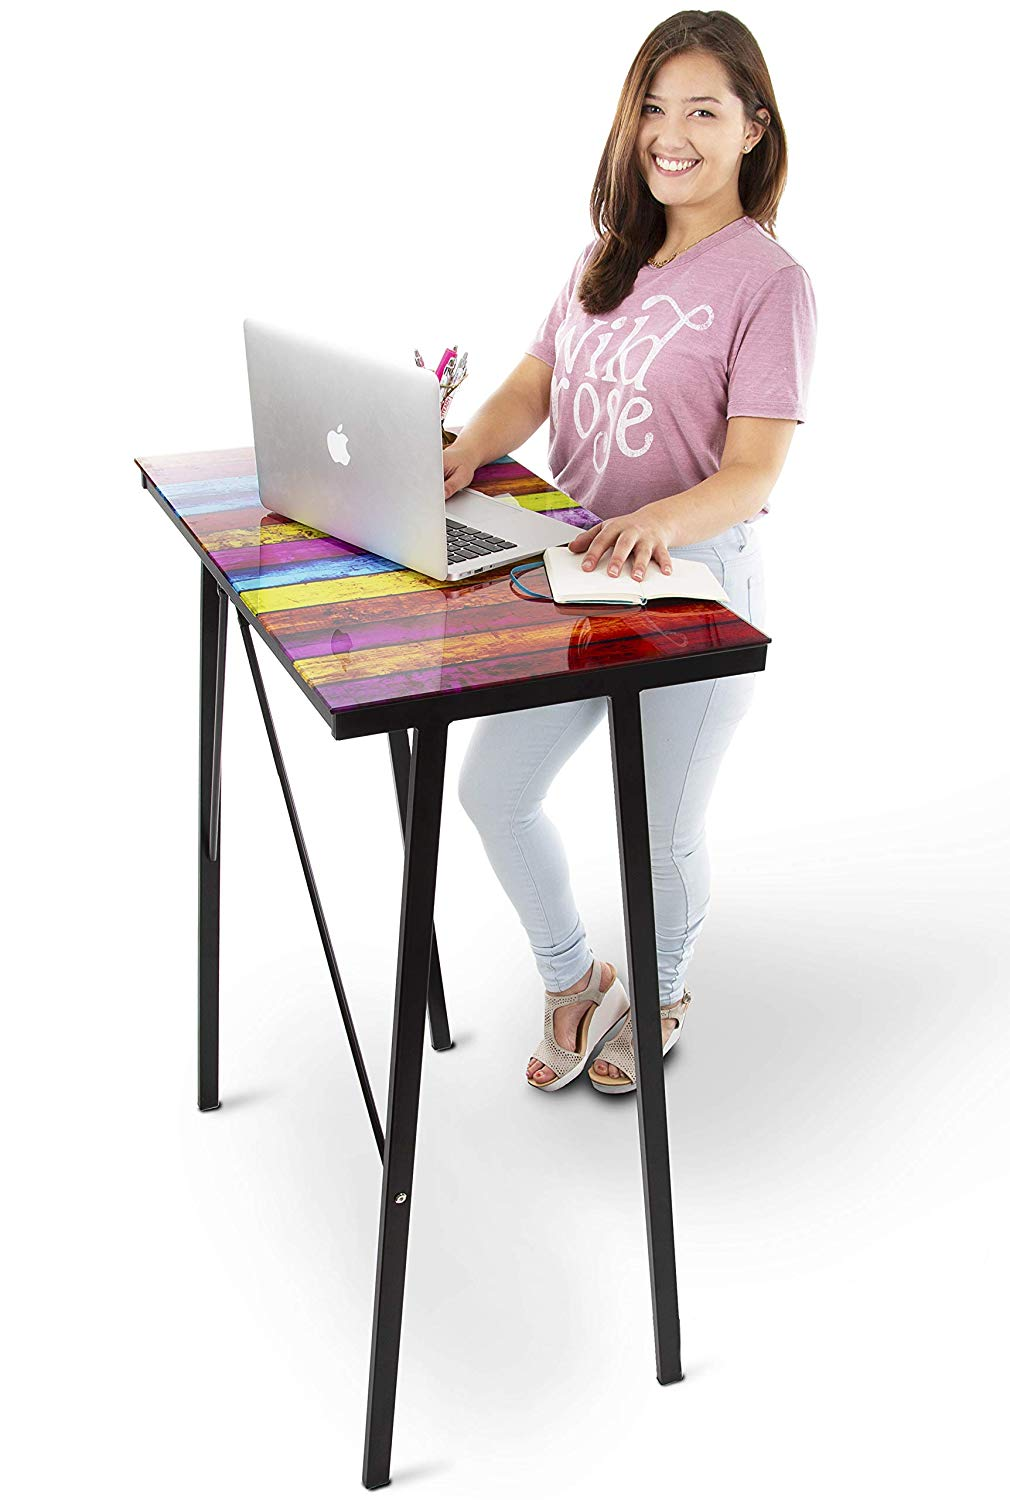 Modern Home Office Standing Desk Workstation with Storage Cubbies! - 47.5